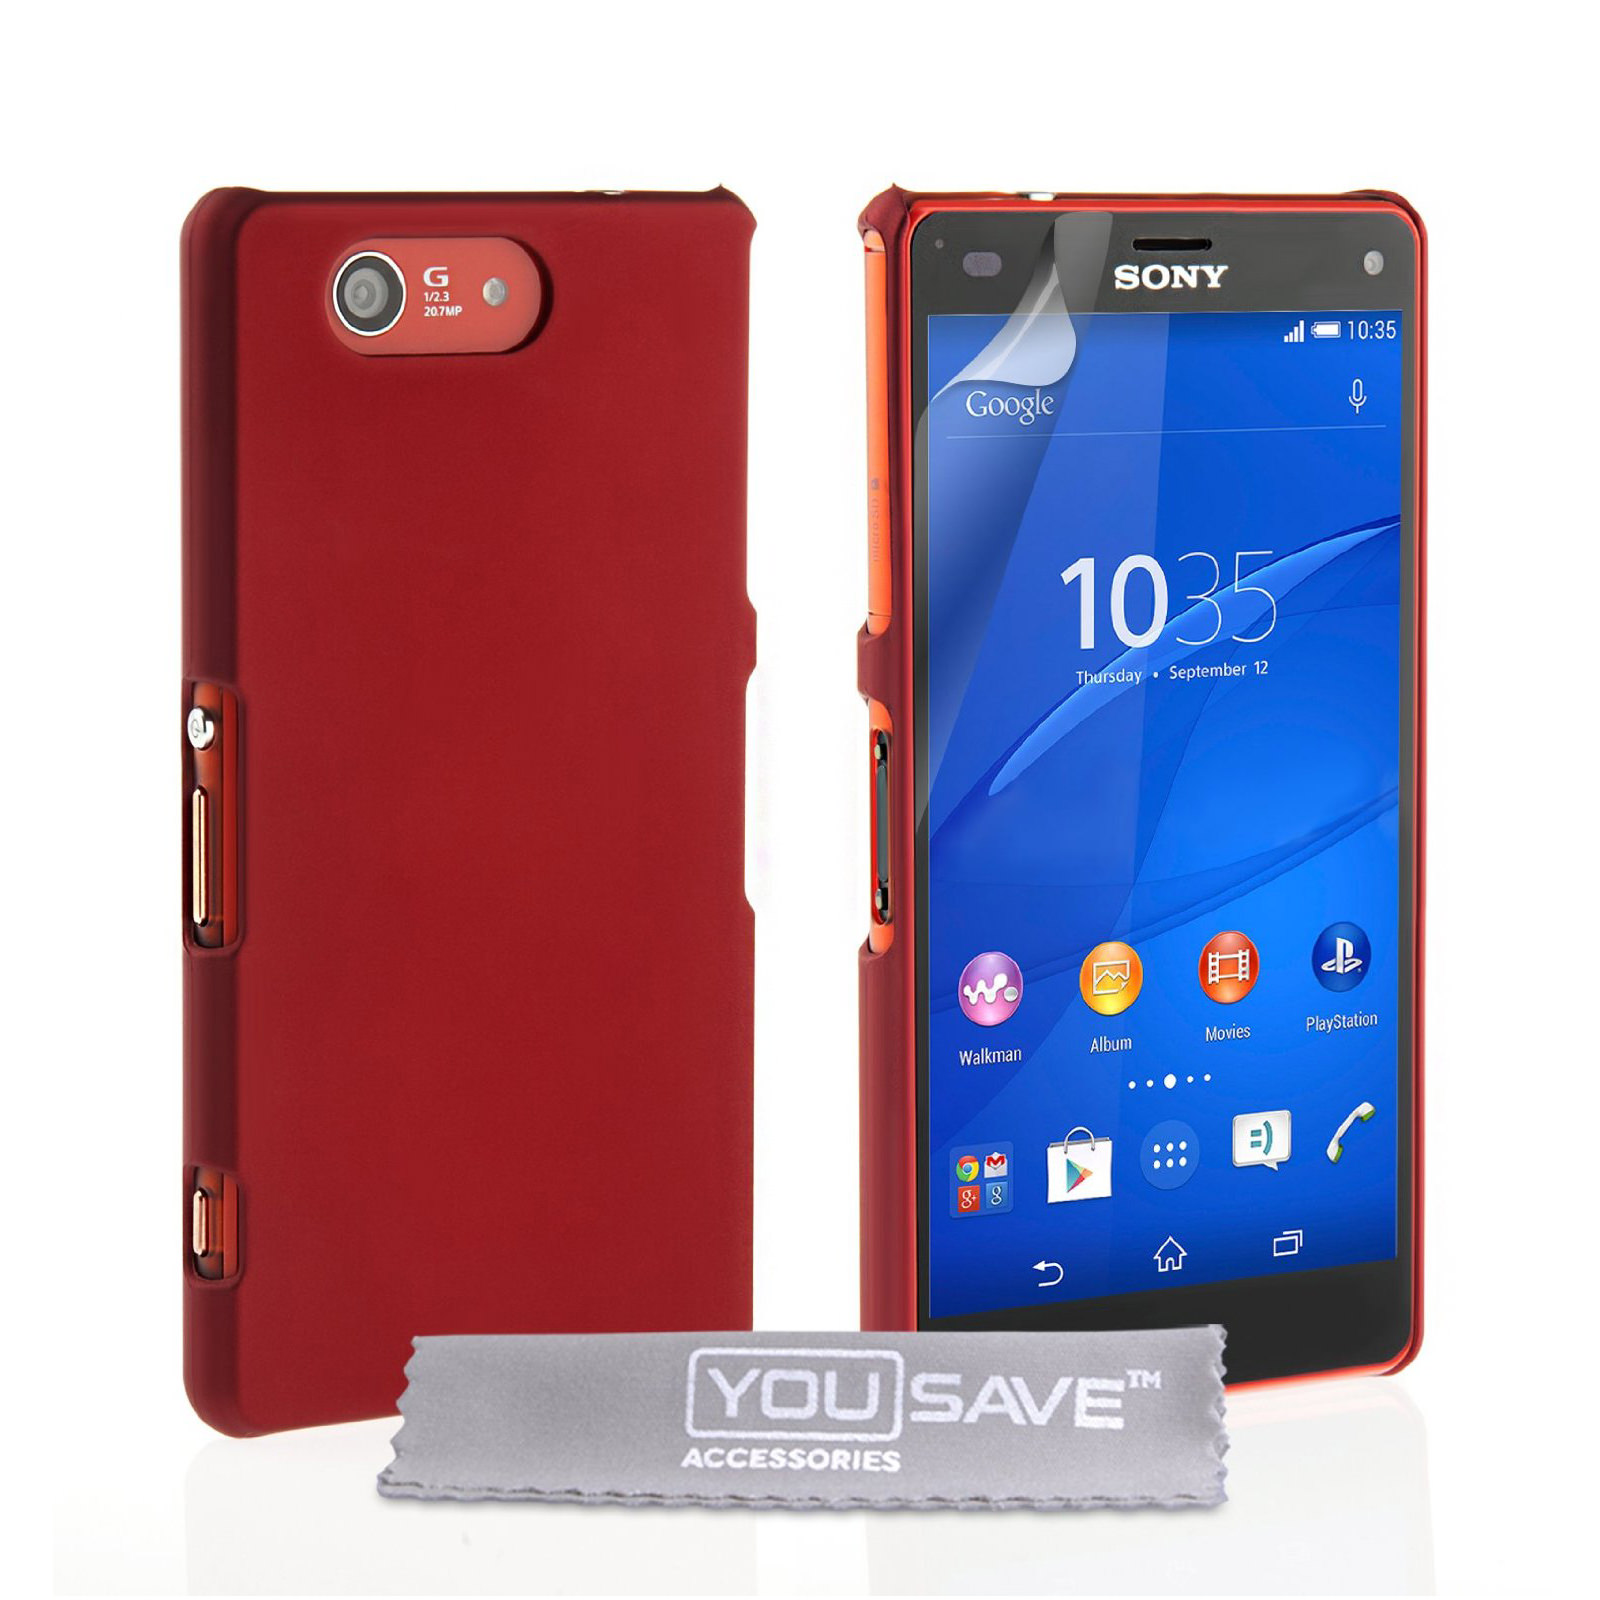 YouSave Accessories Sony Xperia Z4 Compact Hard Hybrid ...